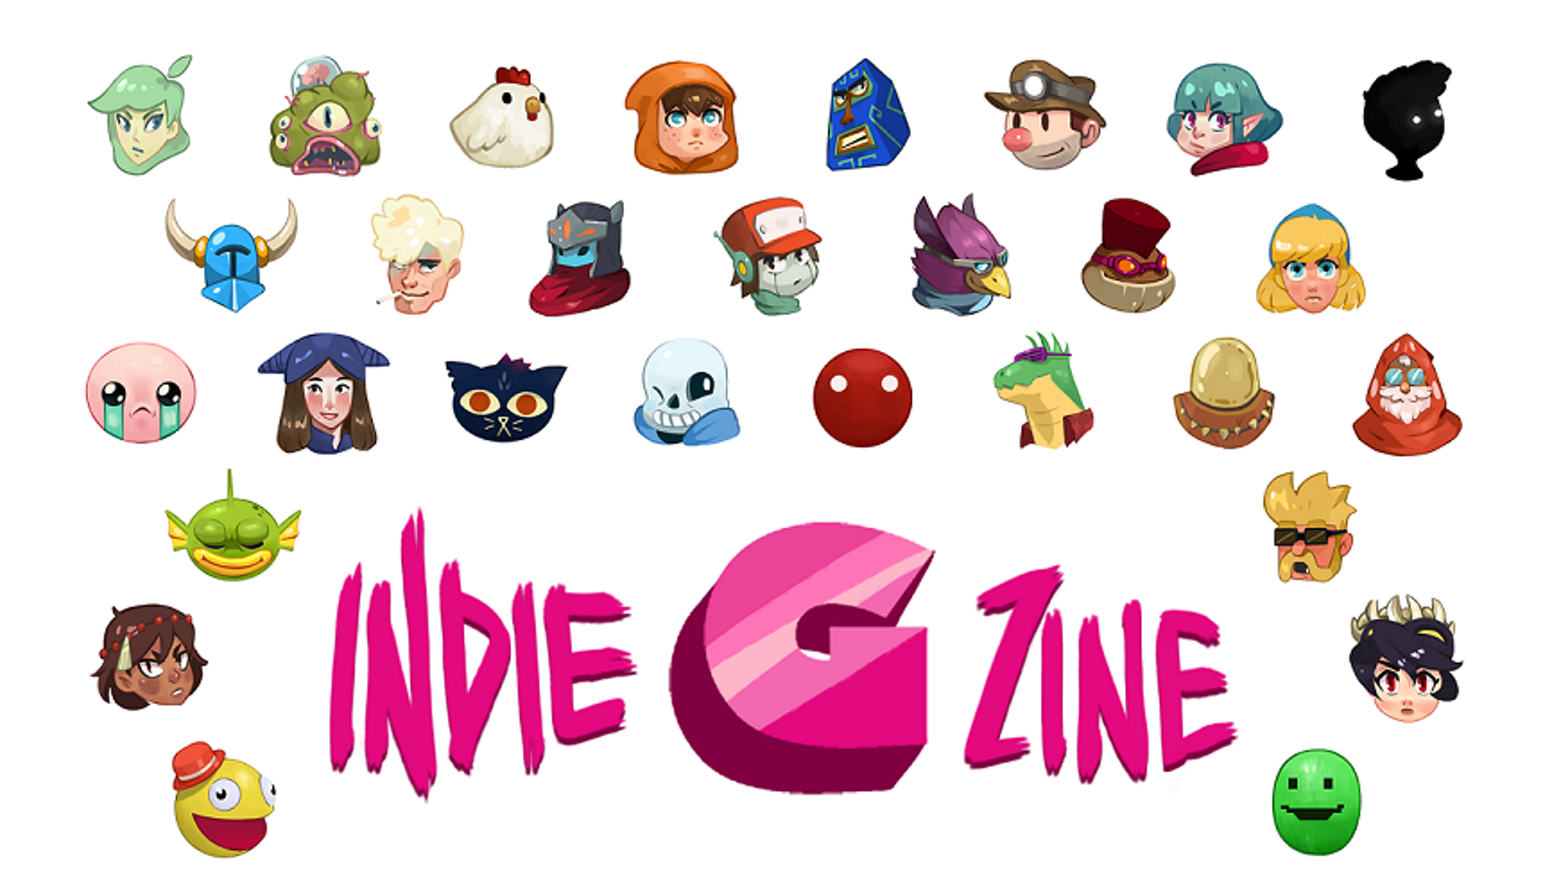 52 talented artists portray 52 awesome indie games in this artzine! Let's celebrate indie games and cool illustration!